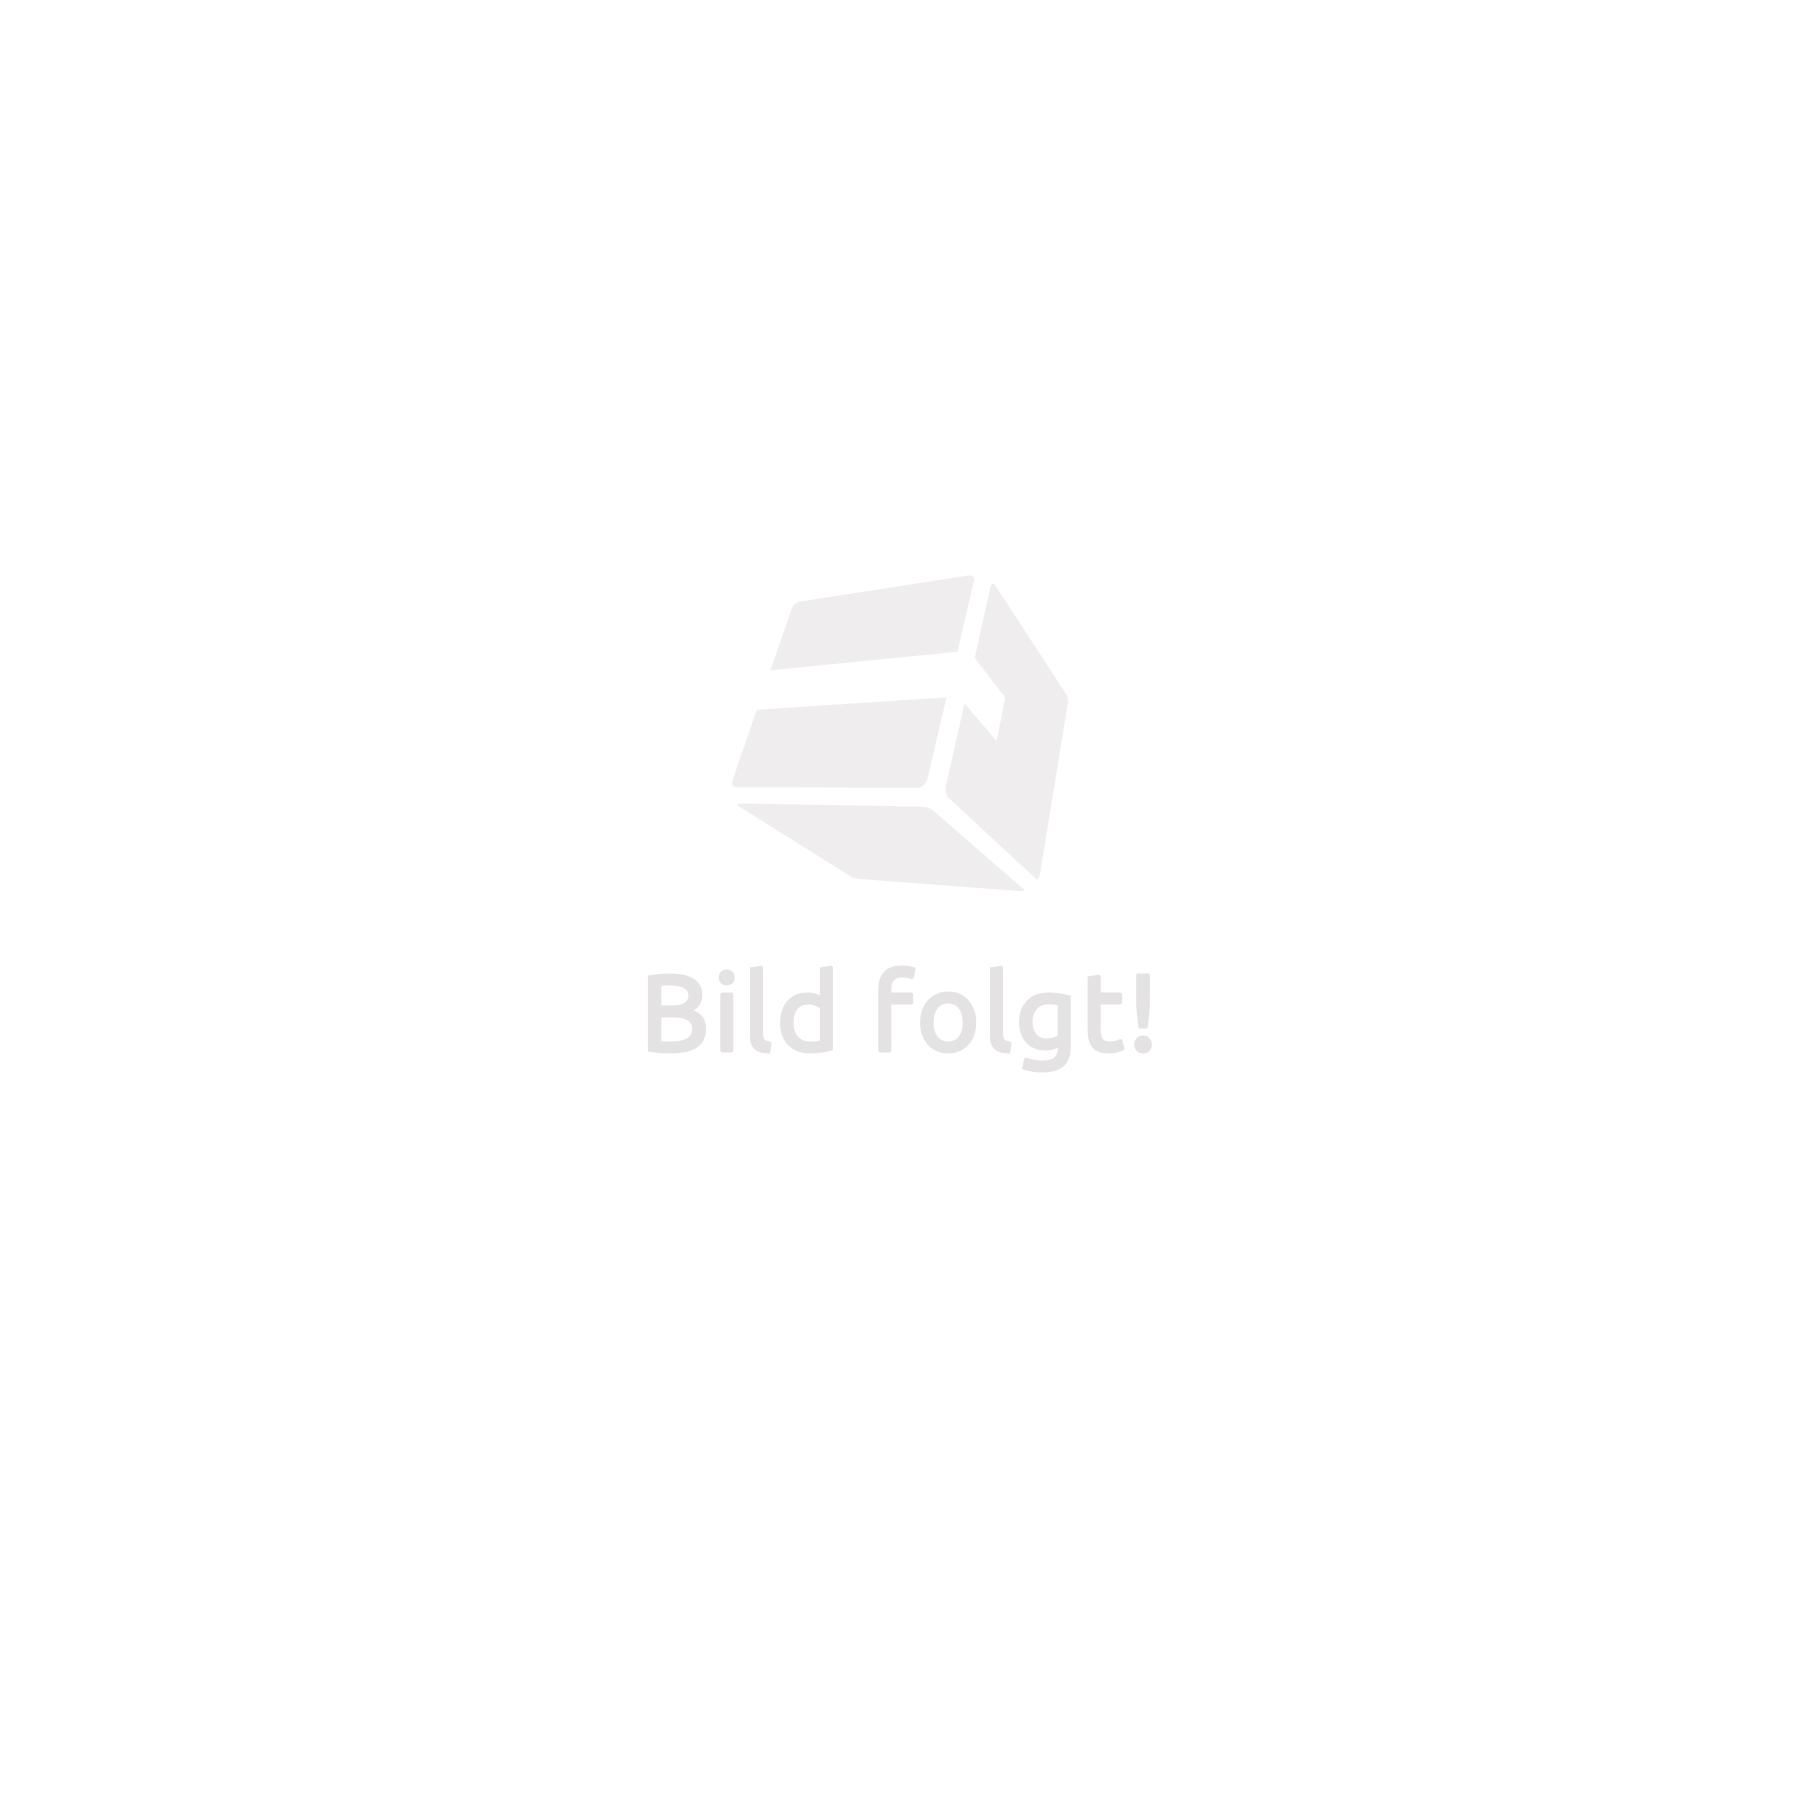 Tyre rack for up to 8 tyres